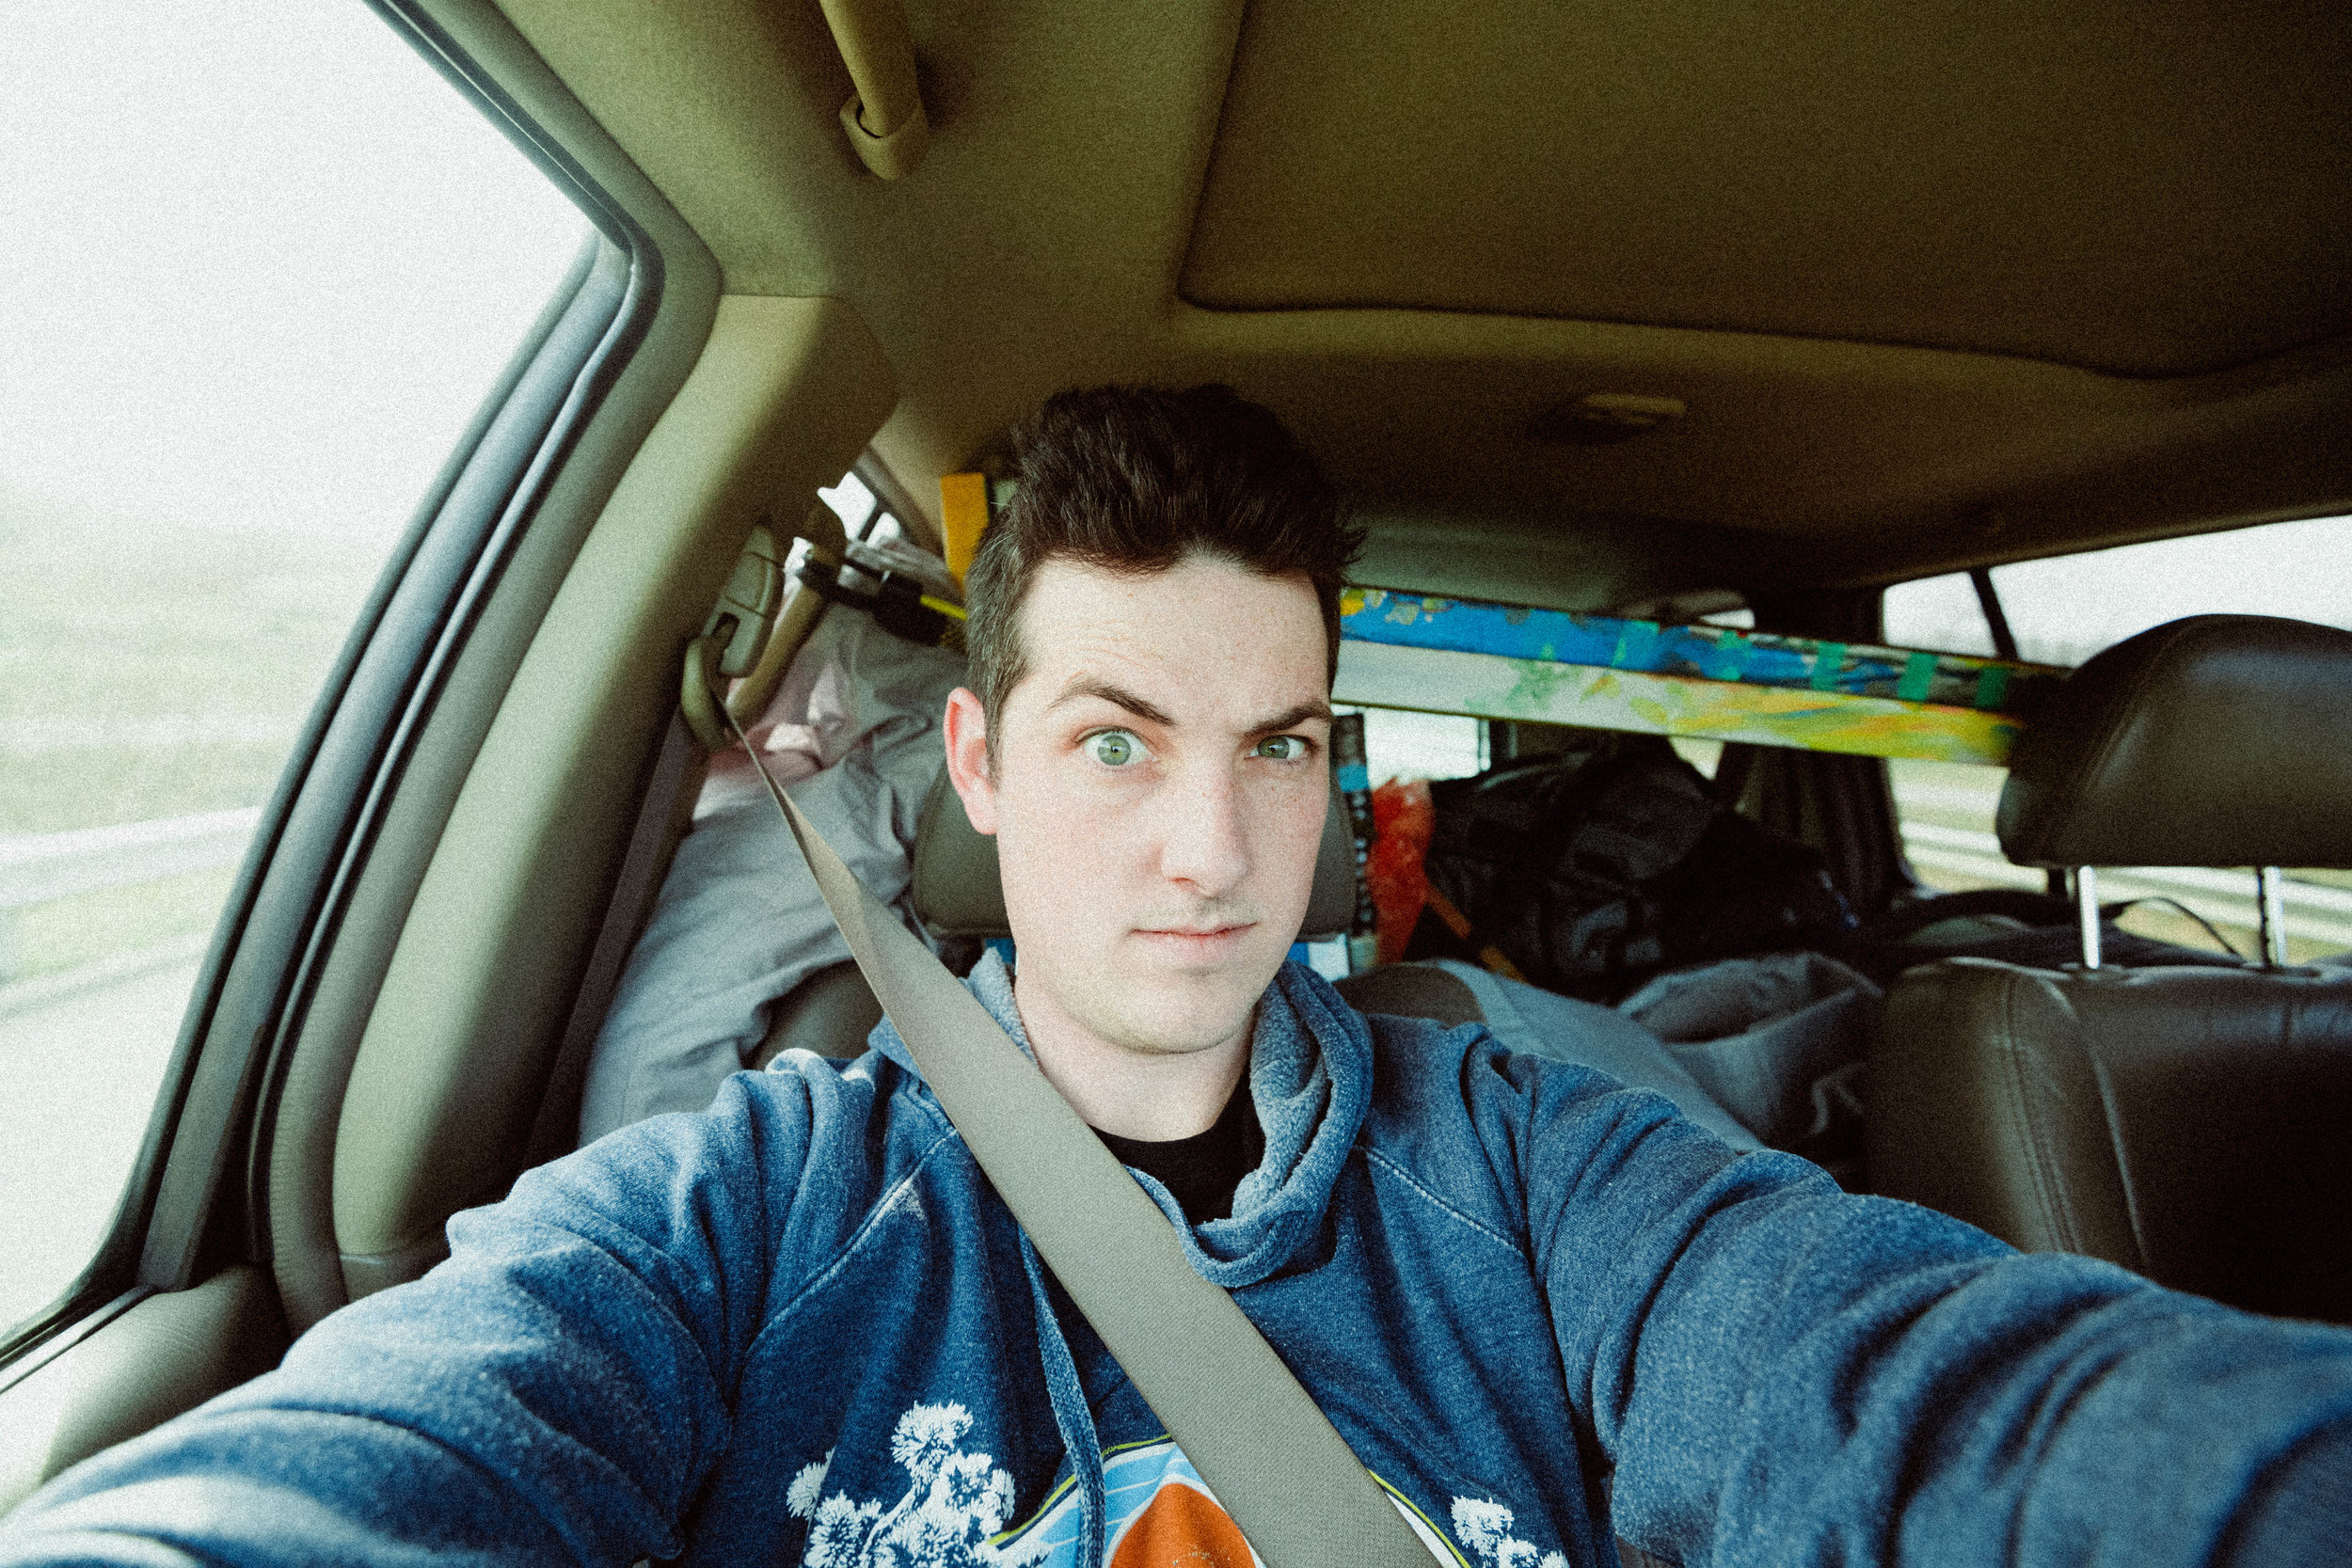 Road Trip Selfie from The Special Delivery Trip